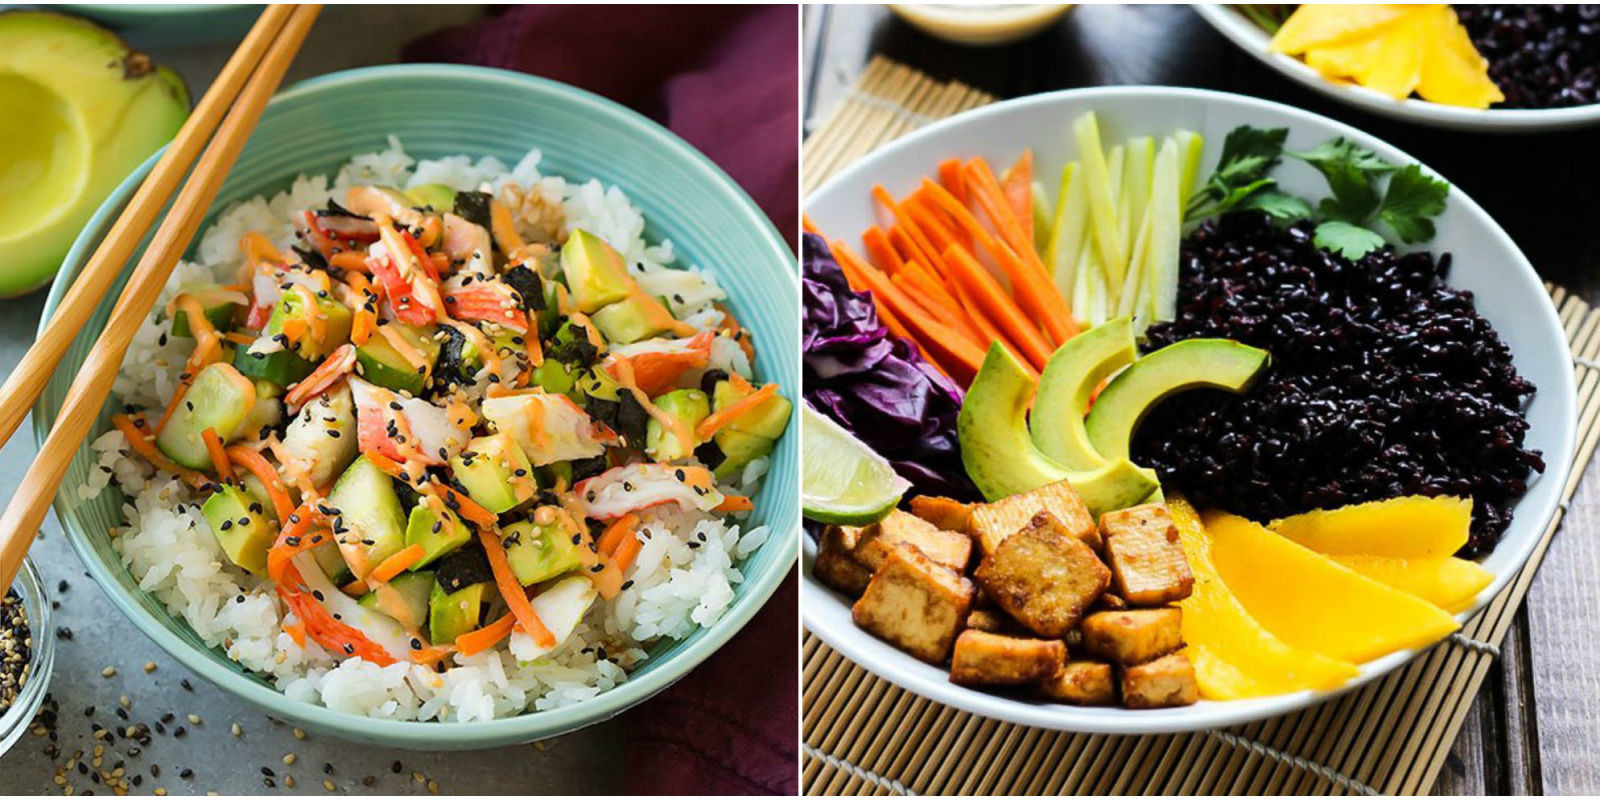 Healthy Rice Dinners  25 Easy Rice Bowl Recipes How to Make Healthy Rice Bowls